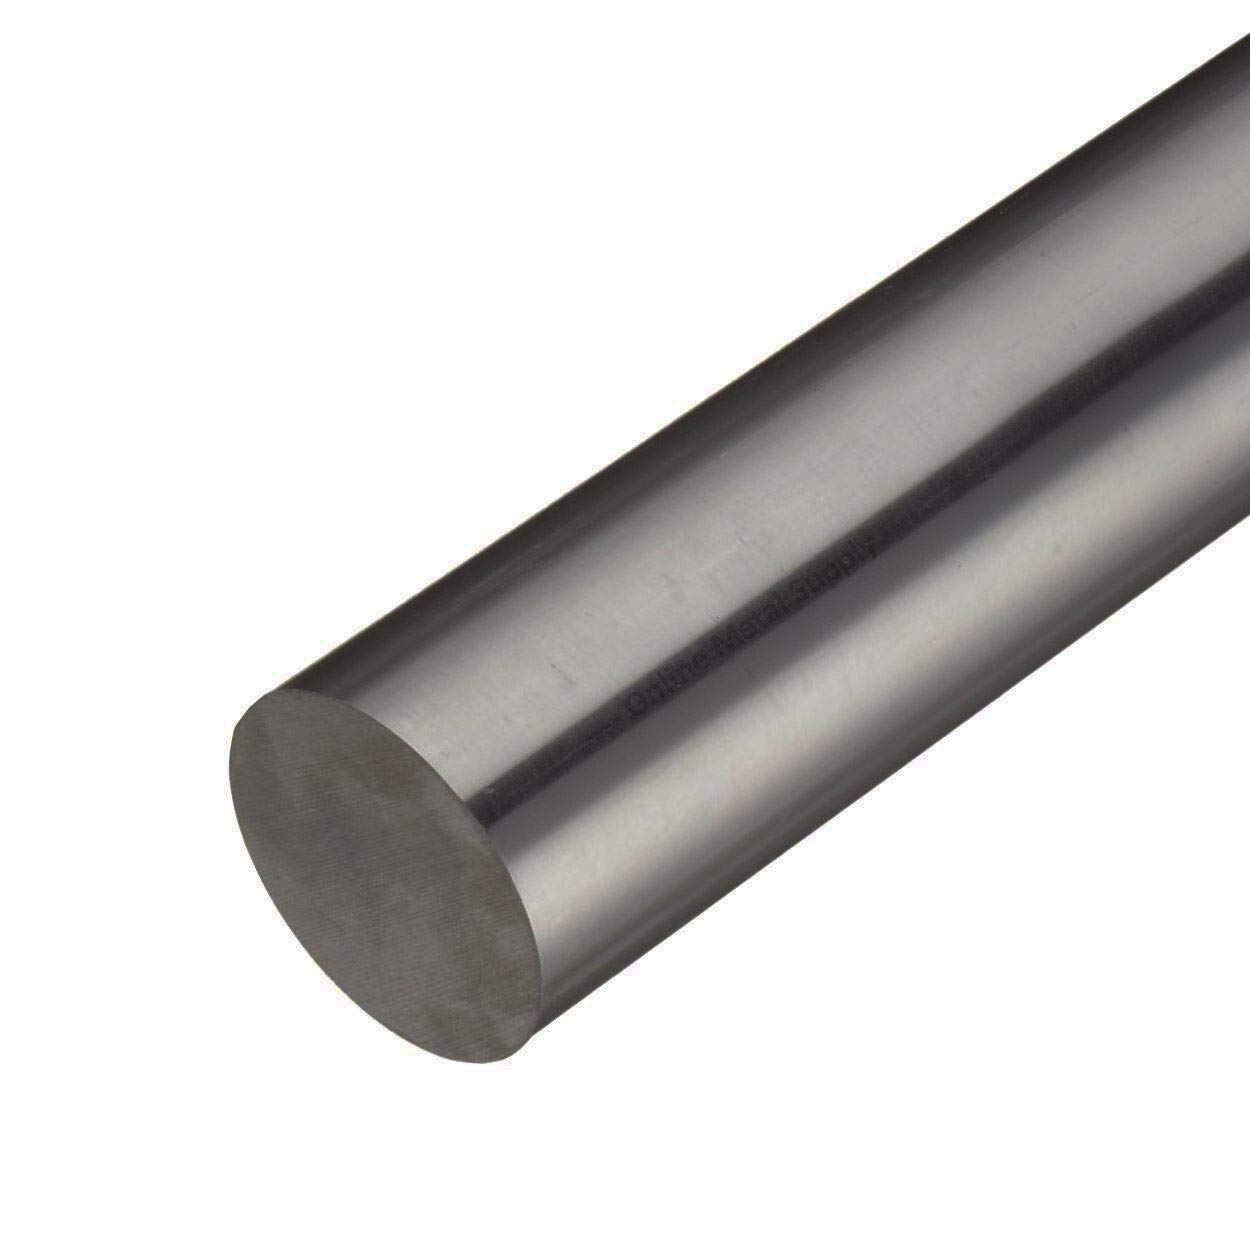 Online Metal Supply Commerically Pure Molybdenum Round Rod, 1.000 (1 inch) x 11 inches by Online Metal Supply